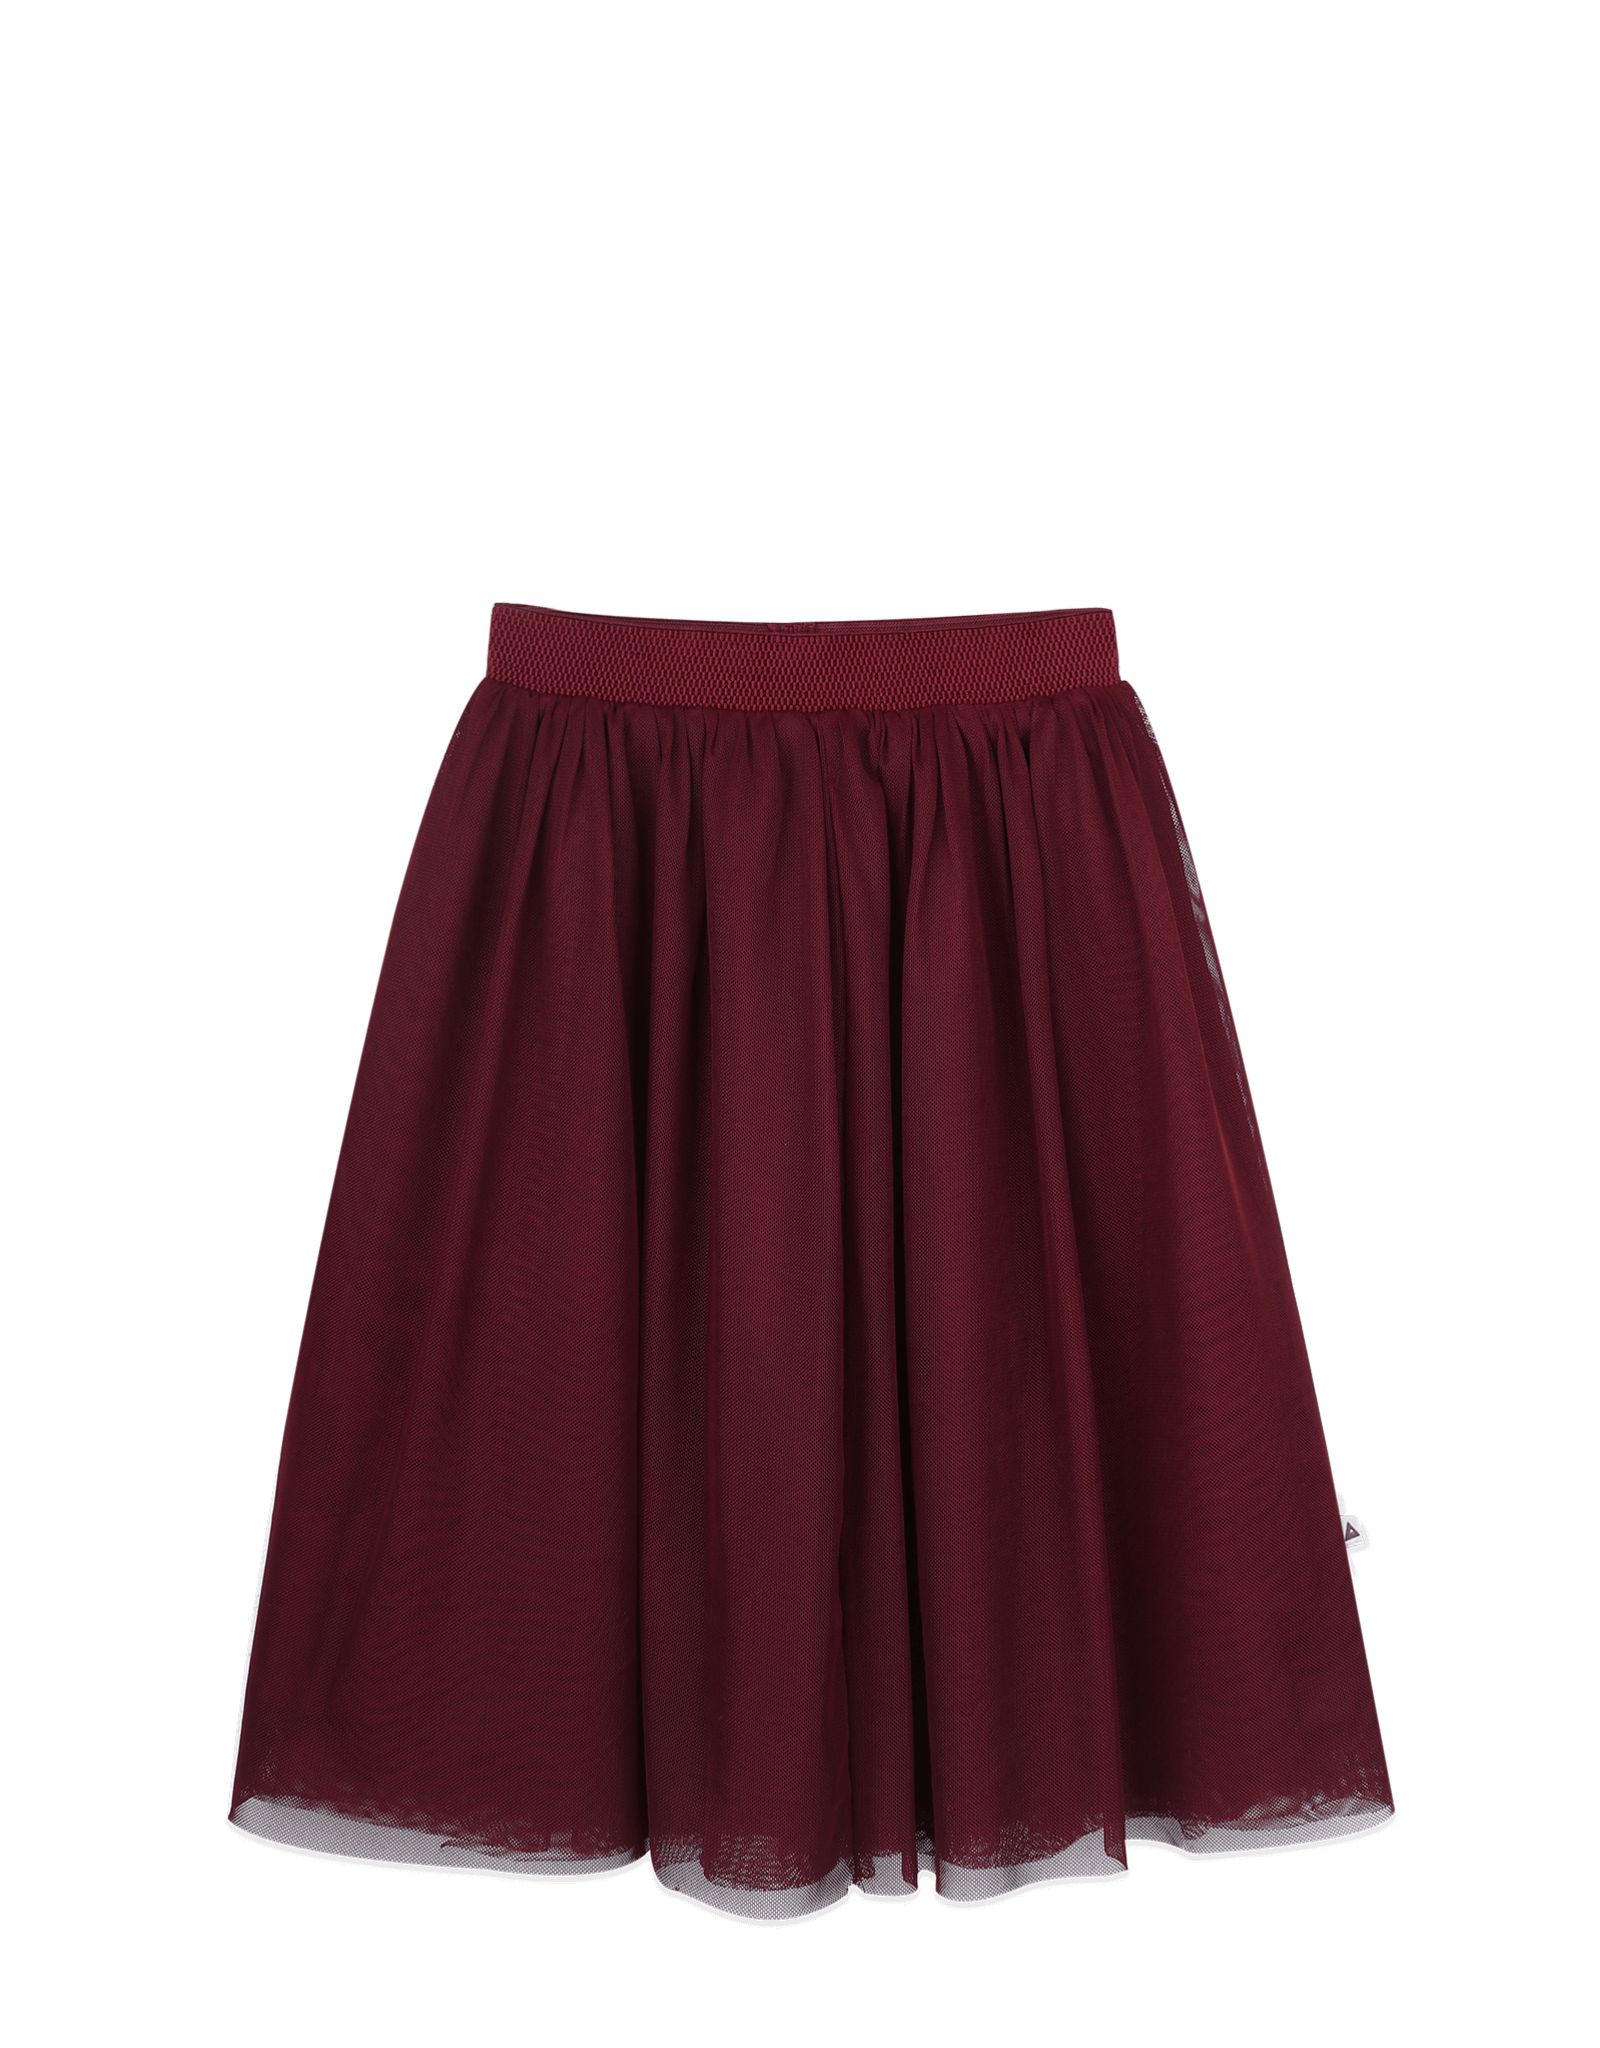 Ammehoela Skirt Plum - Romee